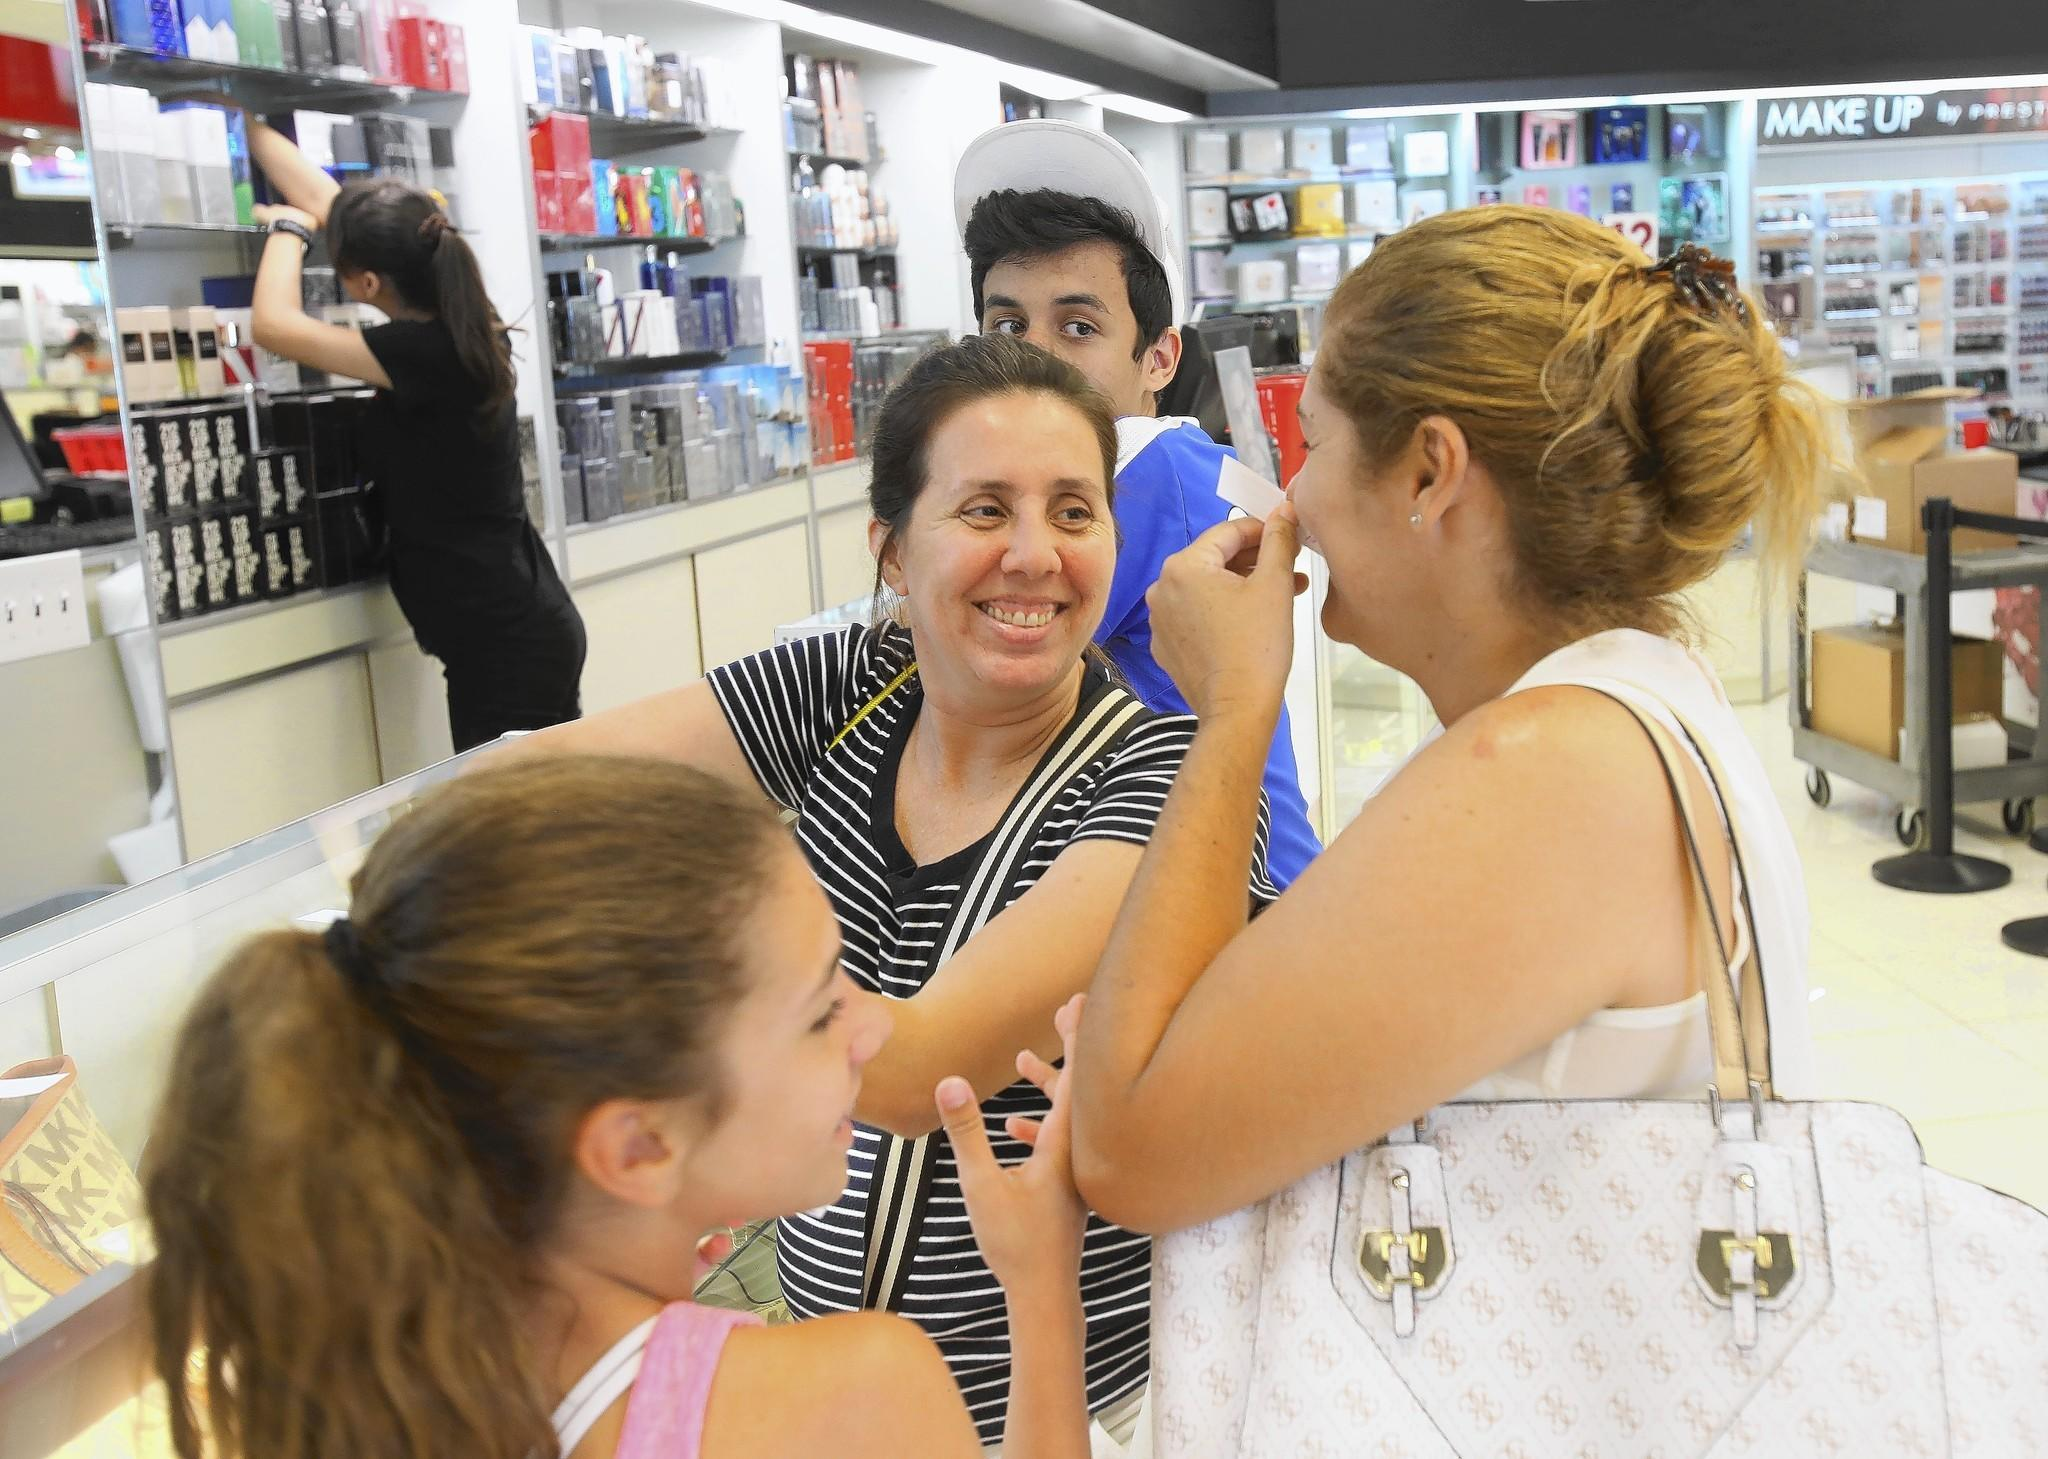 Fabiola Bordallo, center, tests scents at Perfumeland with her family from Rio de Janeiro.